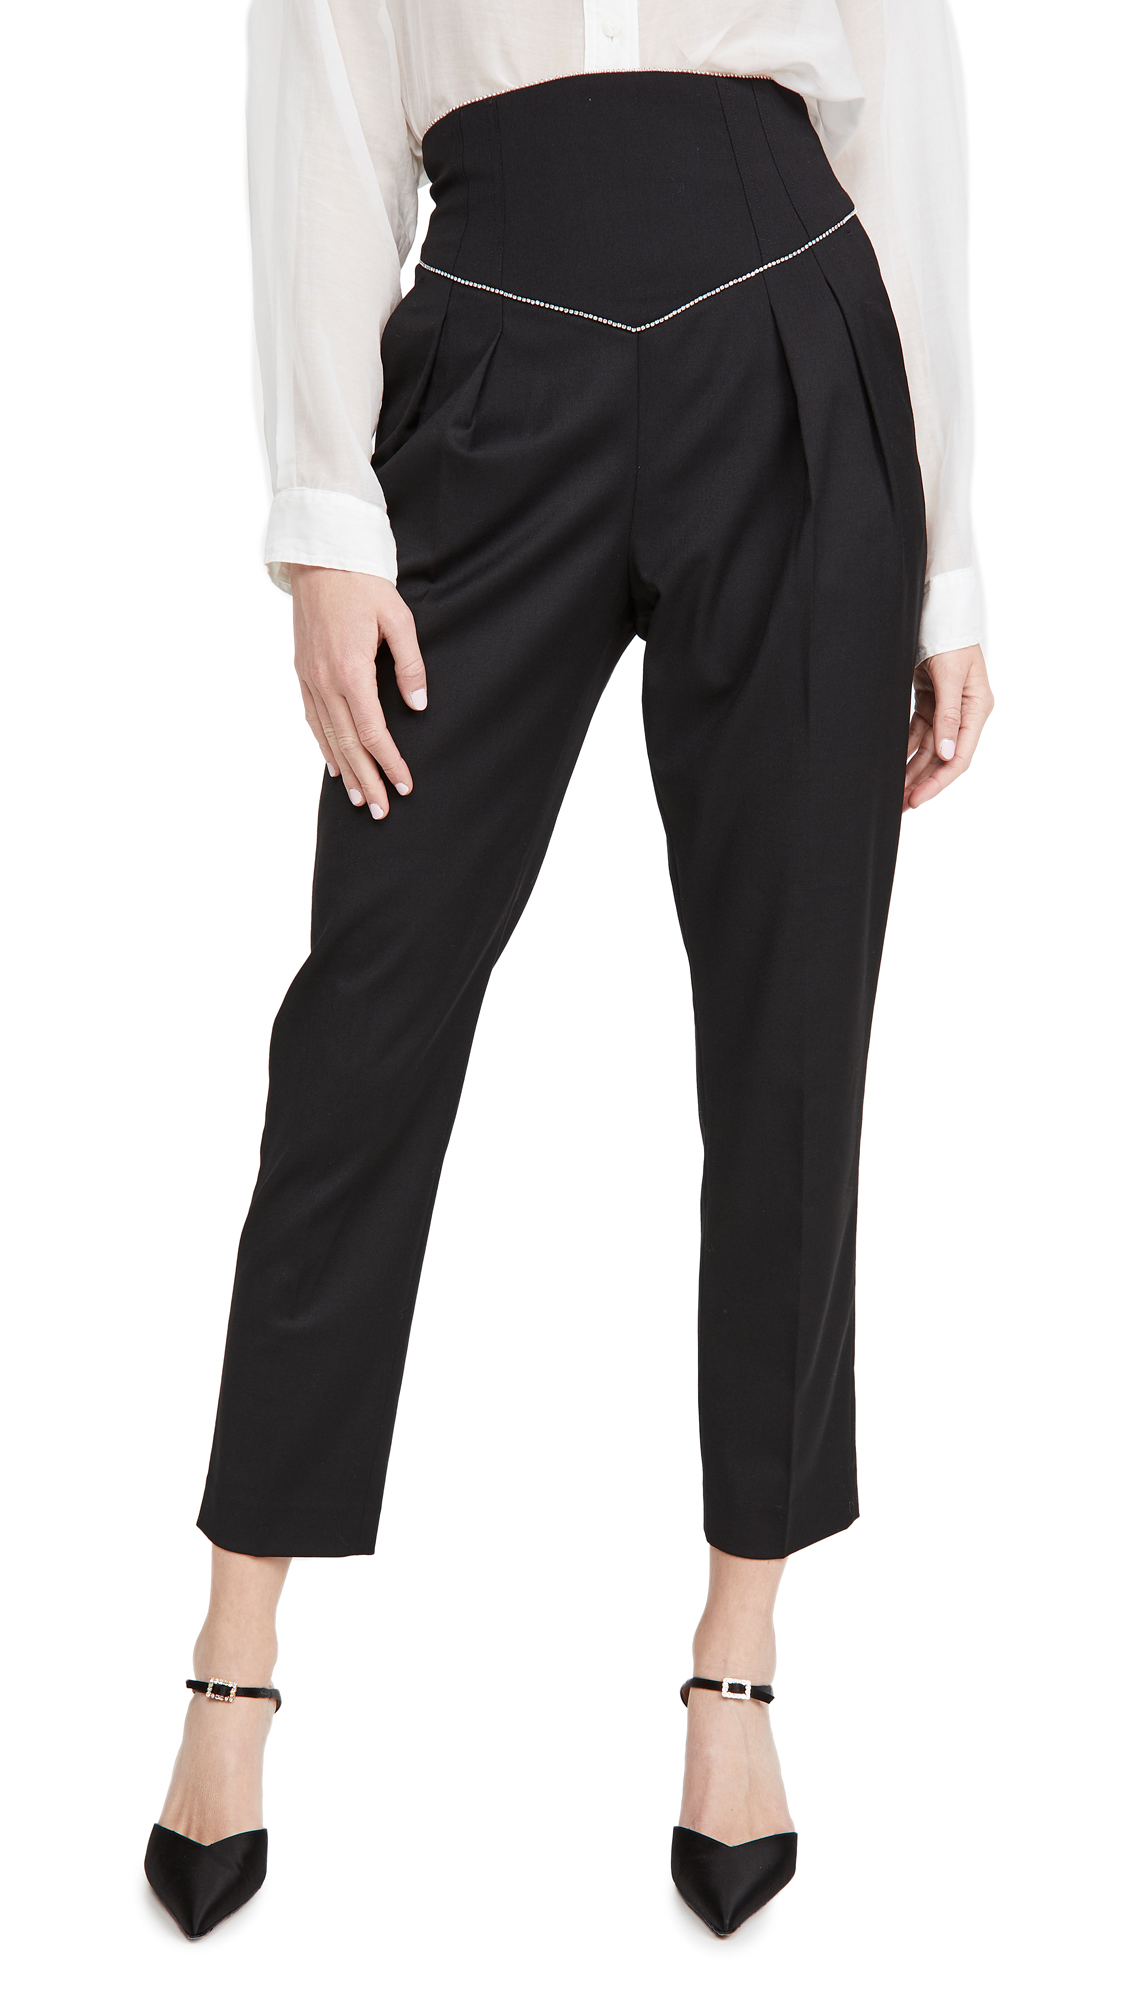 Rebecca Vallance Starwood Diamante Pants